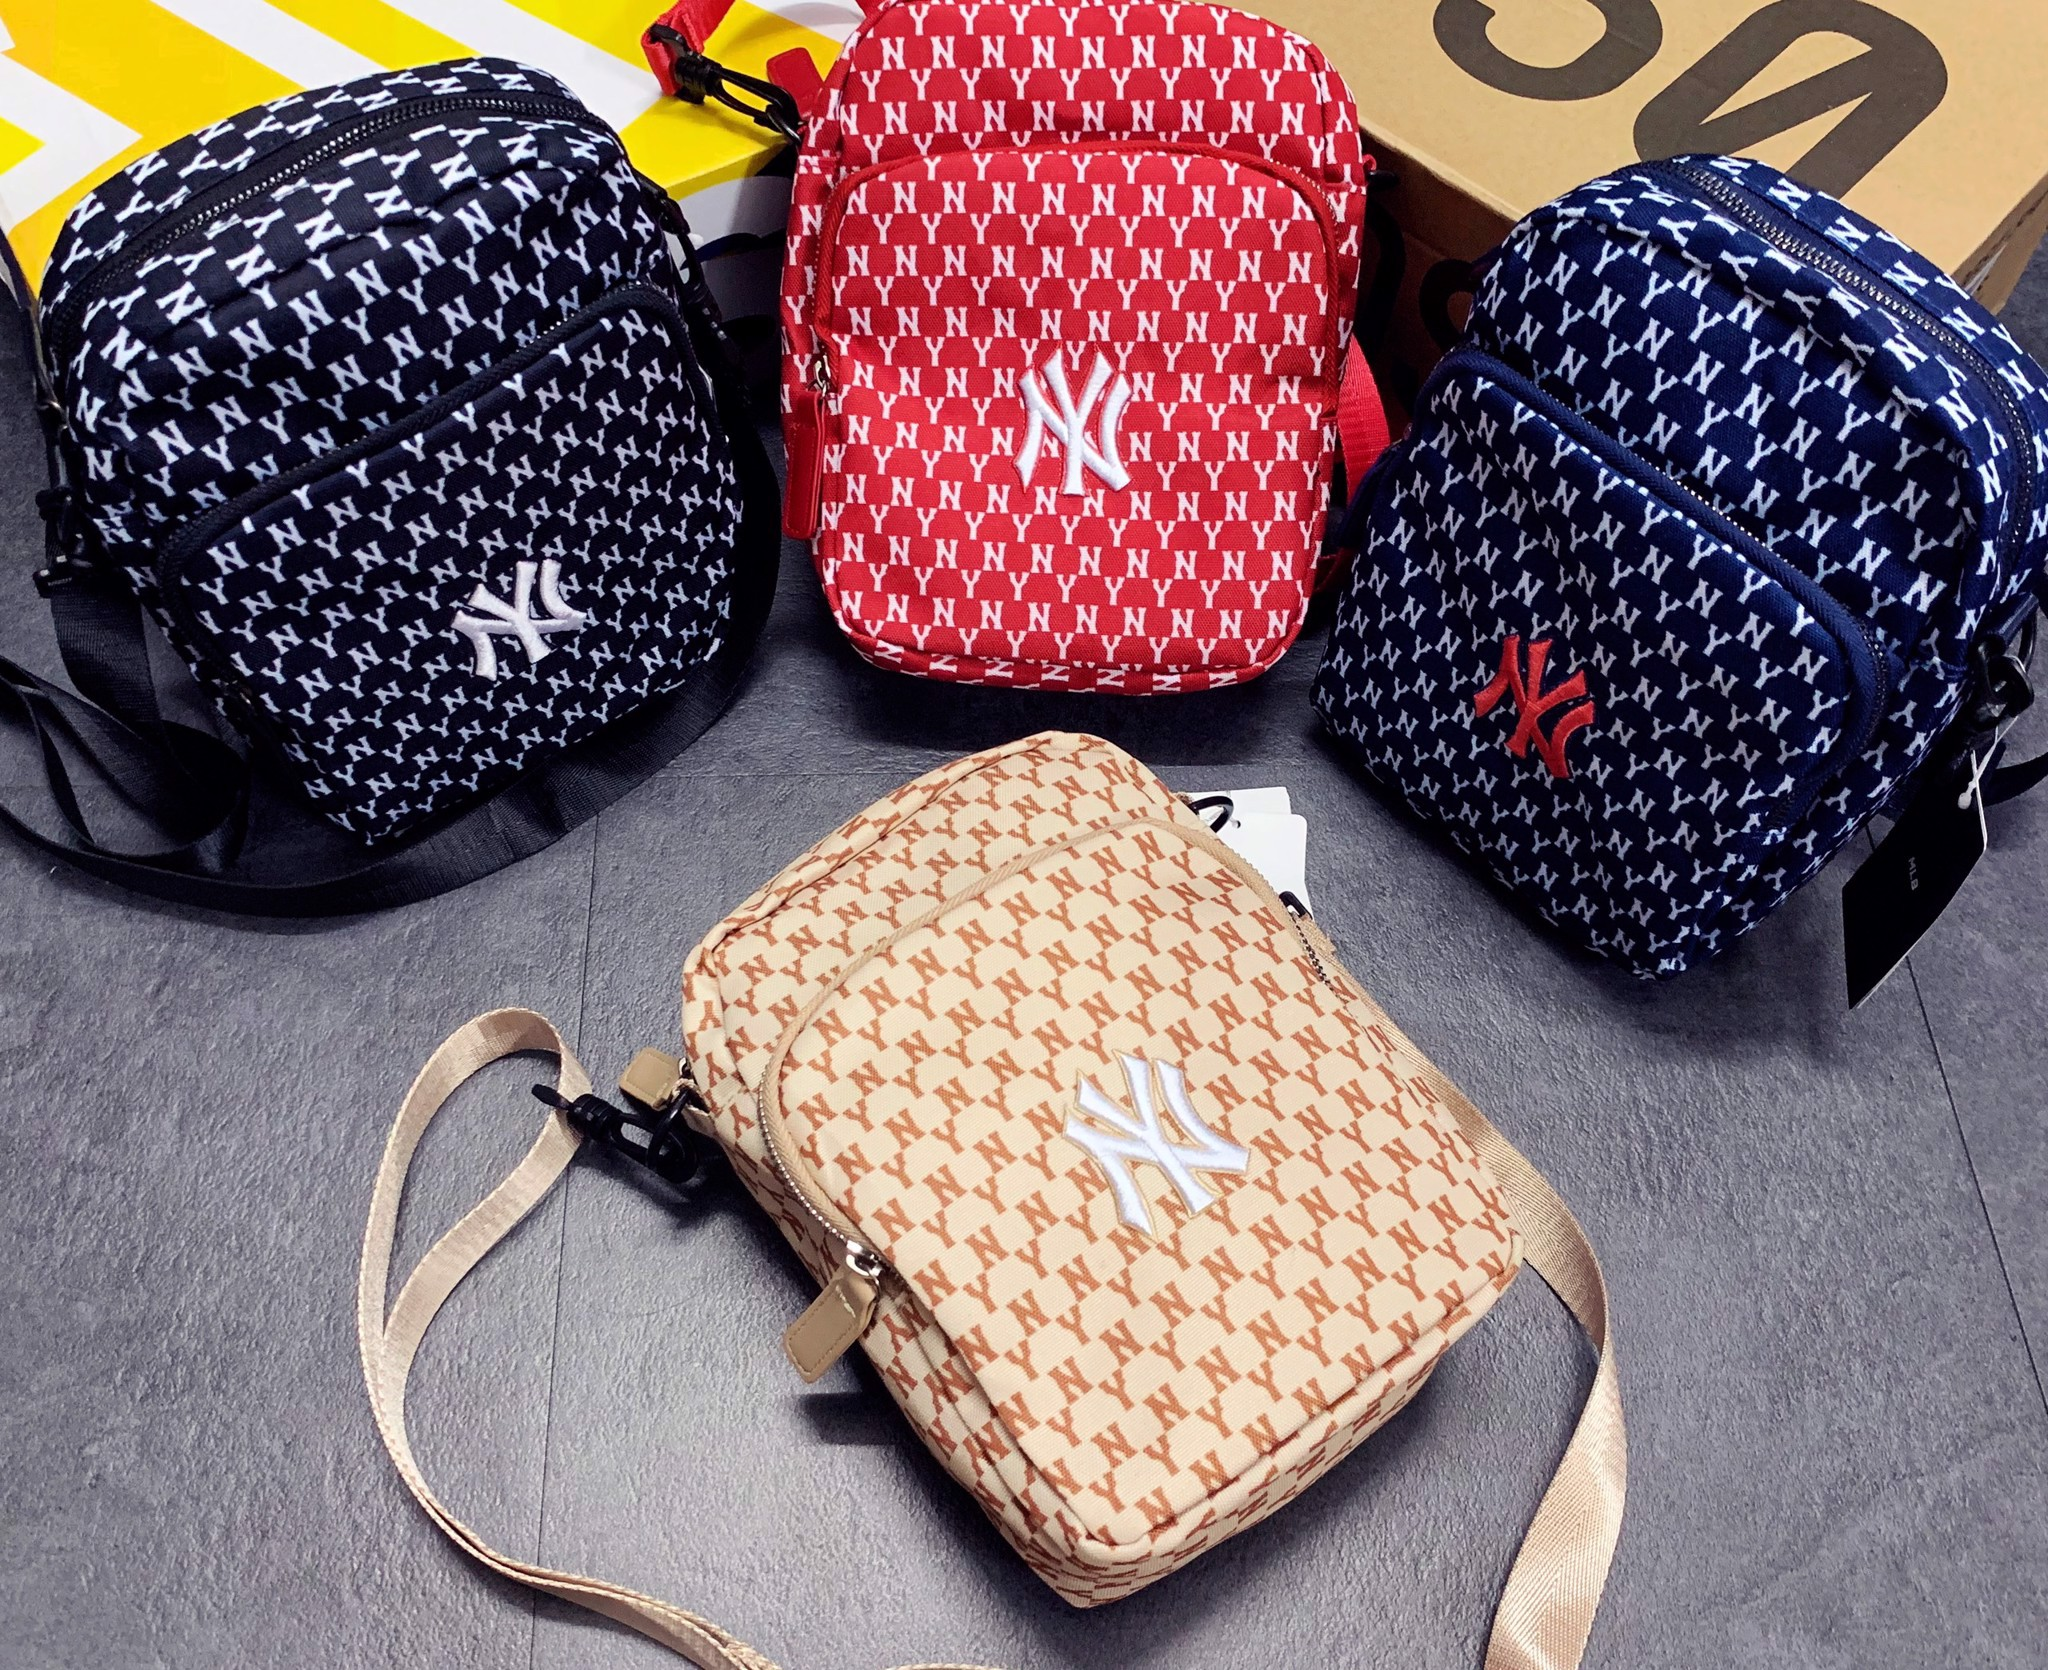 NY Monogram mini bag